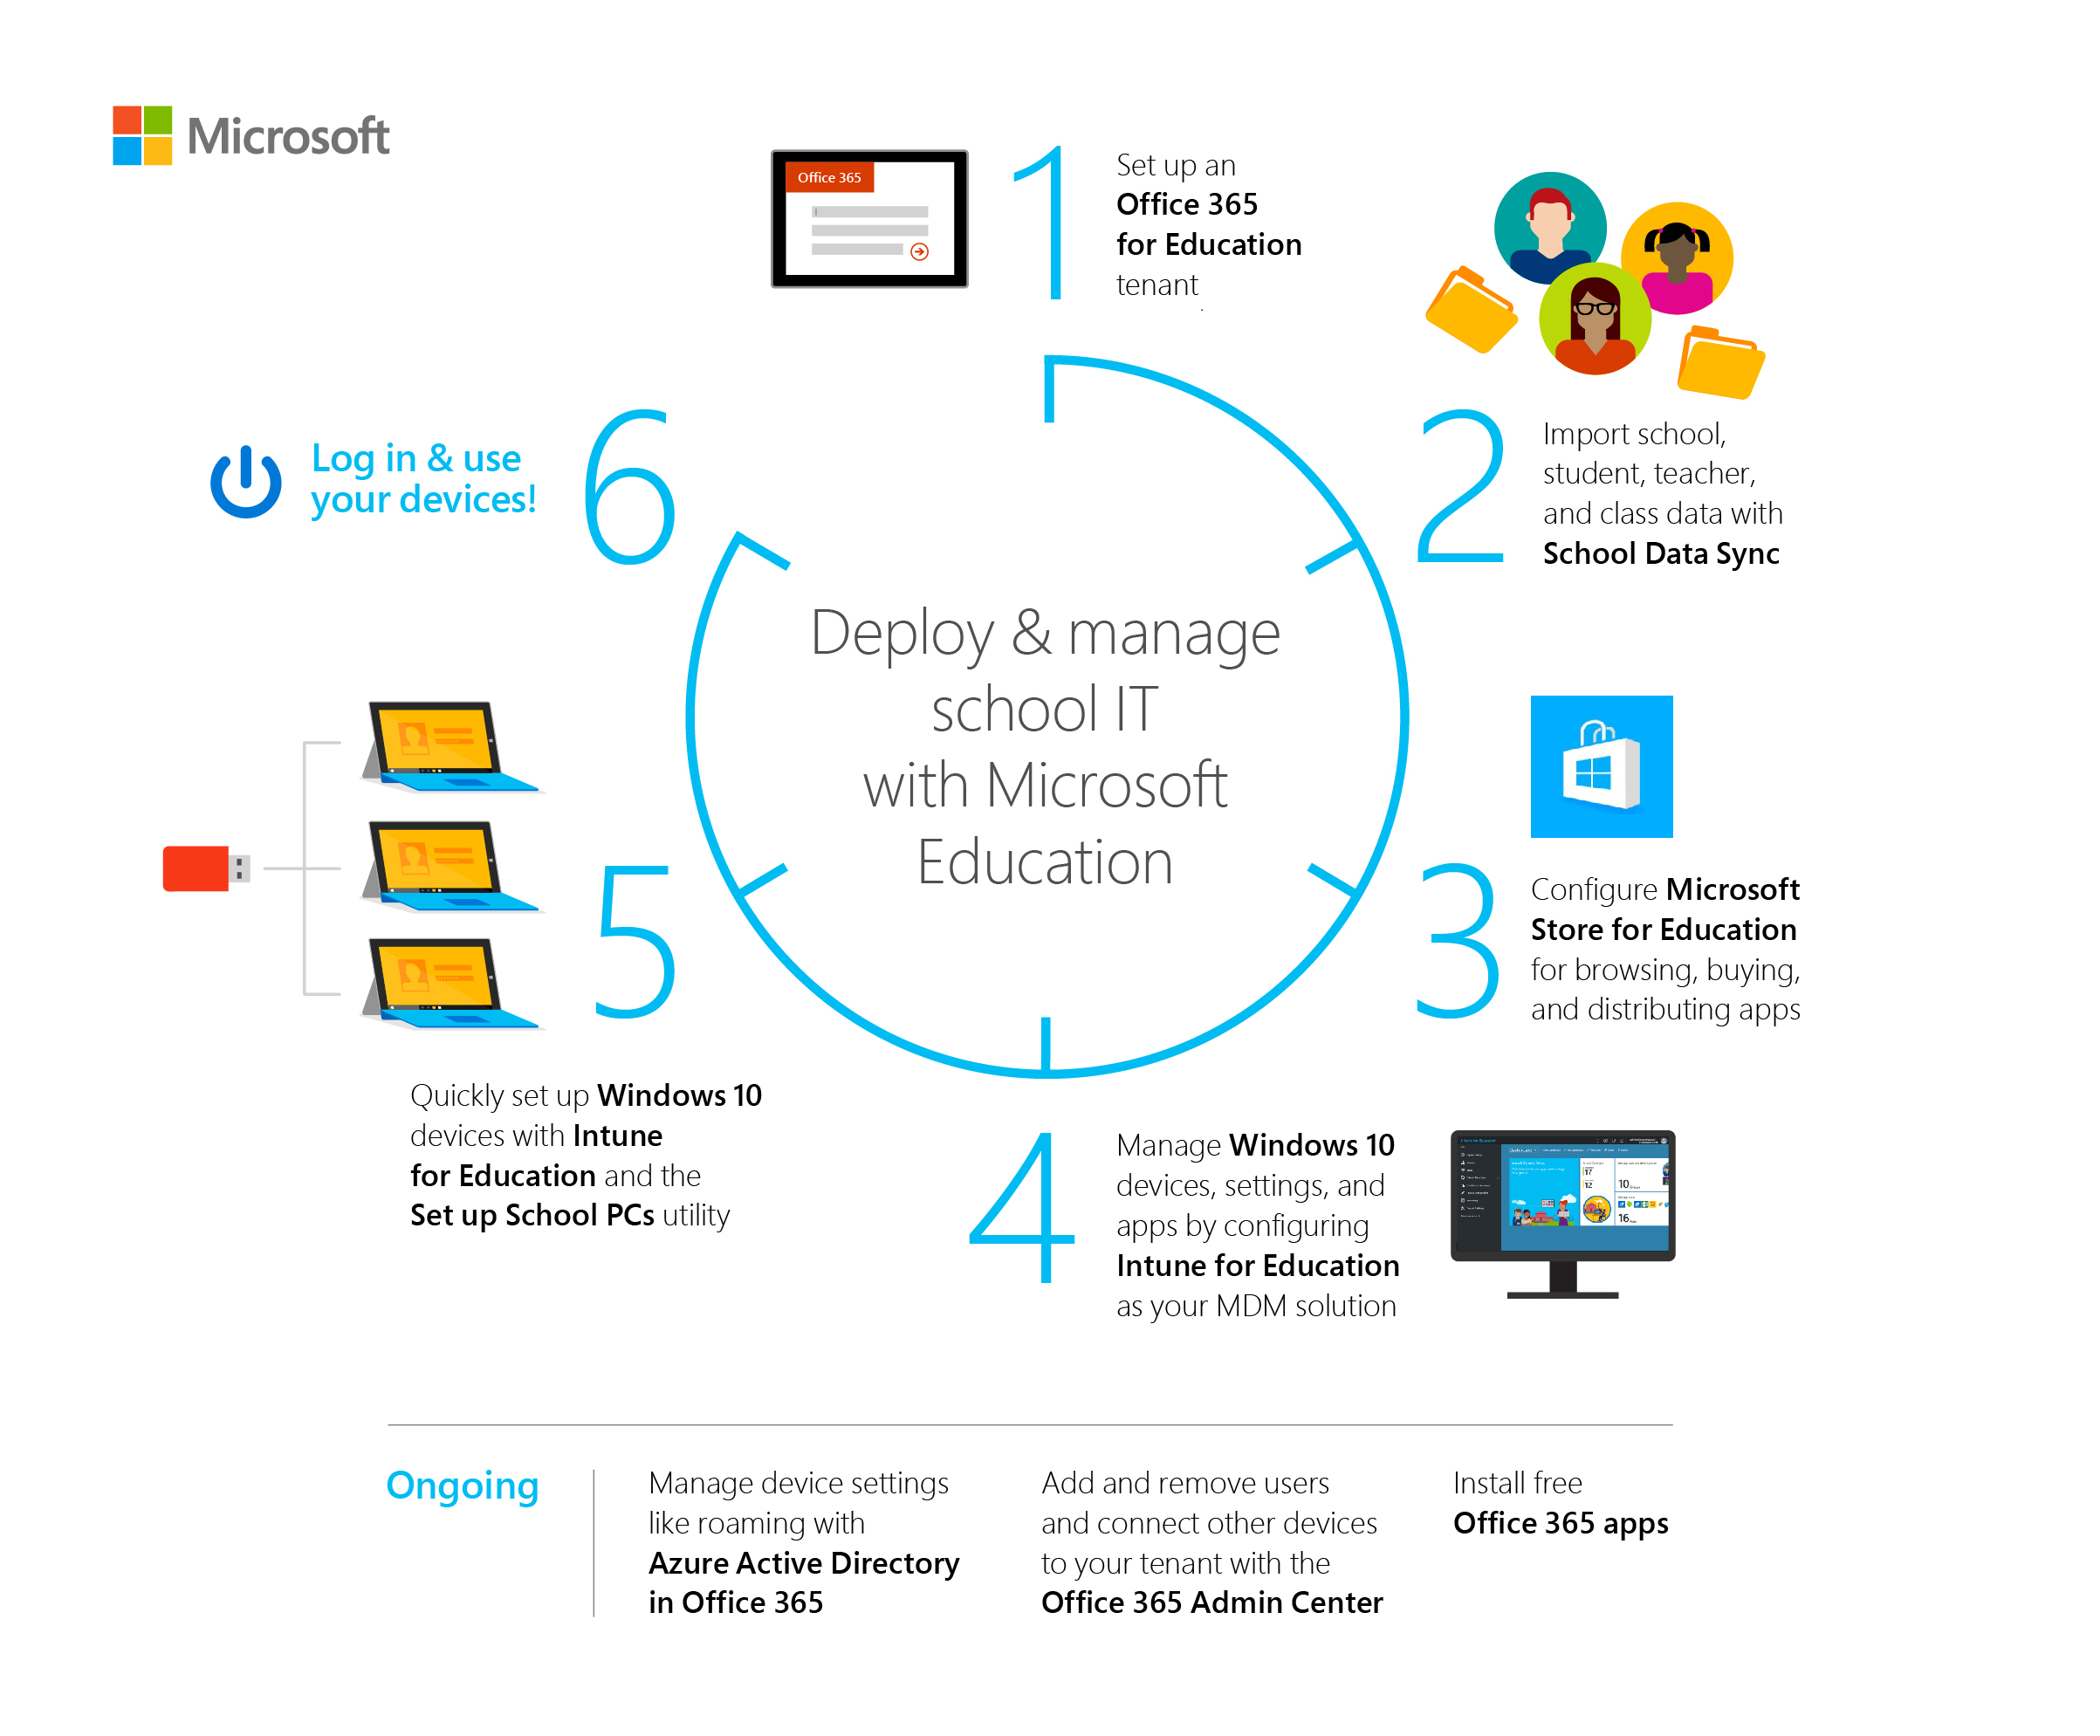 Deploy and manage a full cloud IT solution with Microsoft Education